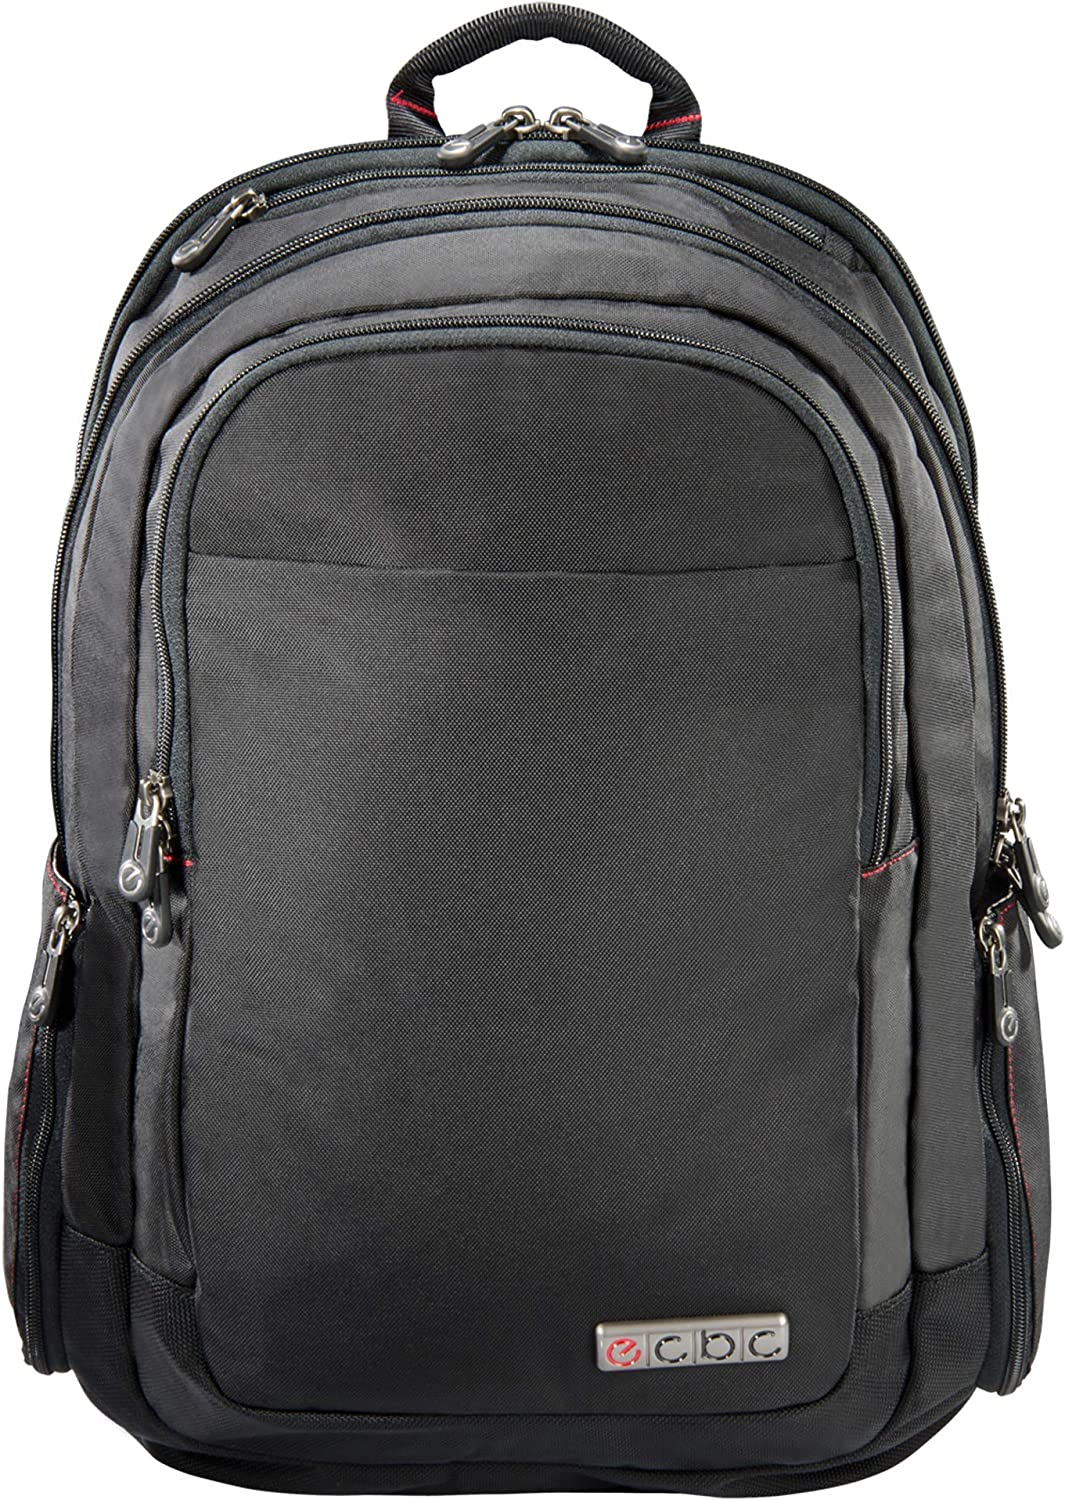 ECBC 19.4 Inch Lance Daypack Travel Backpack TSA-Approved FastPass System Lightweight Water-Resistant Business Overnight Bag Adjustable Straps 17 Padded Laptop Sleeve – Black B7103-10